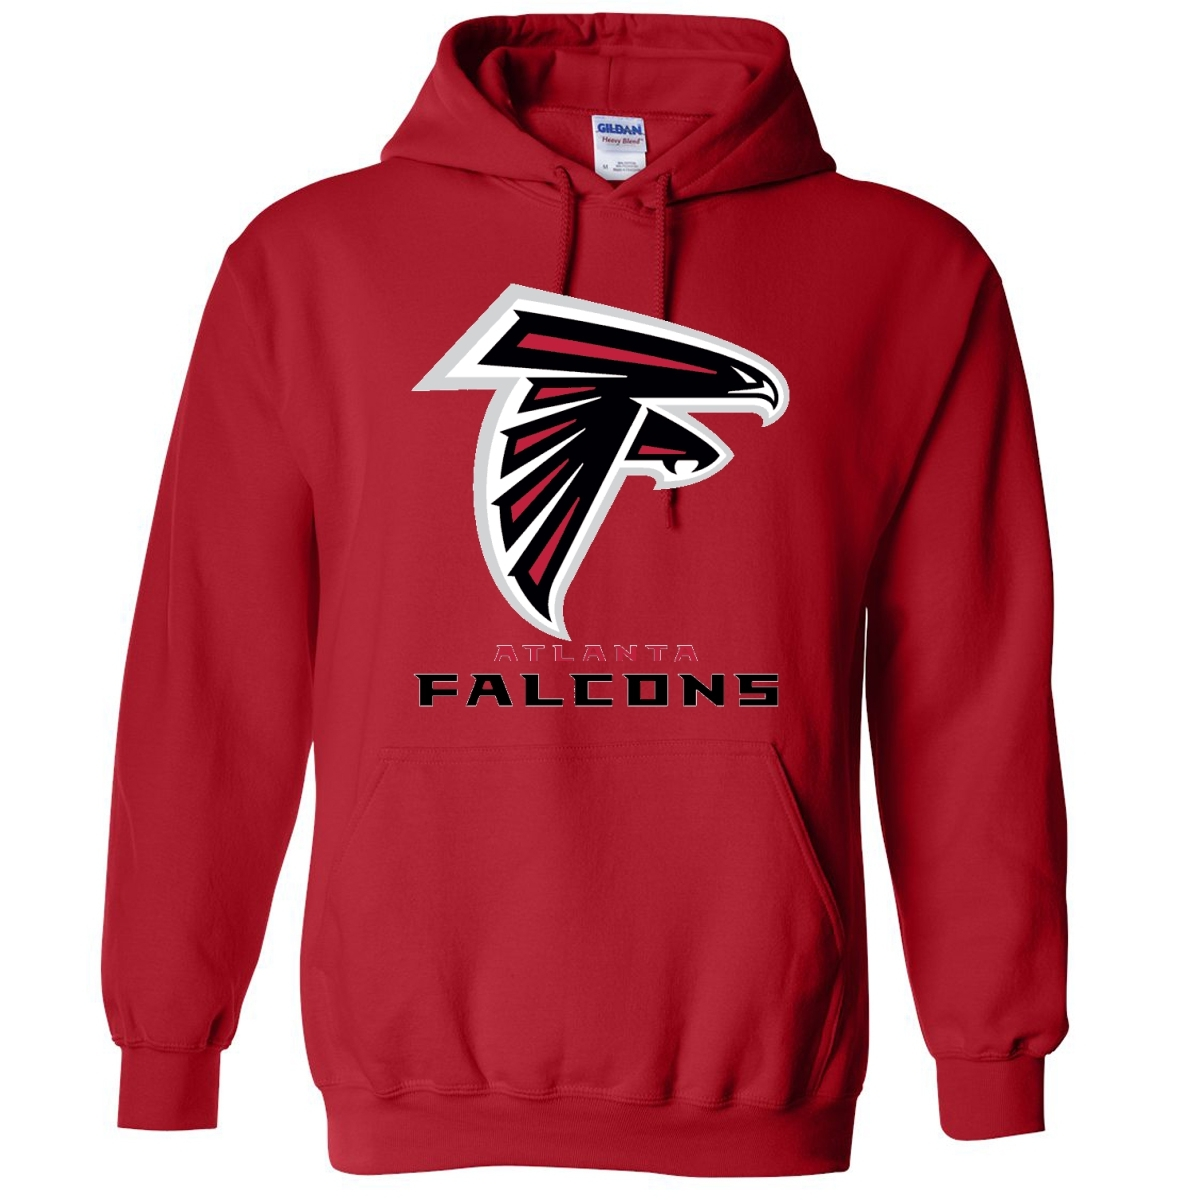 00018 FOOTBALL American football Atlanta Falcons Hoodie